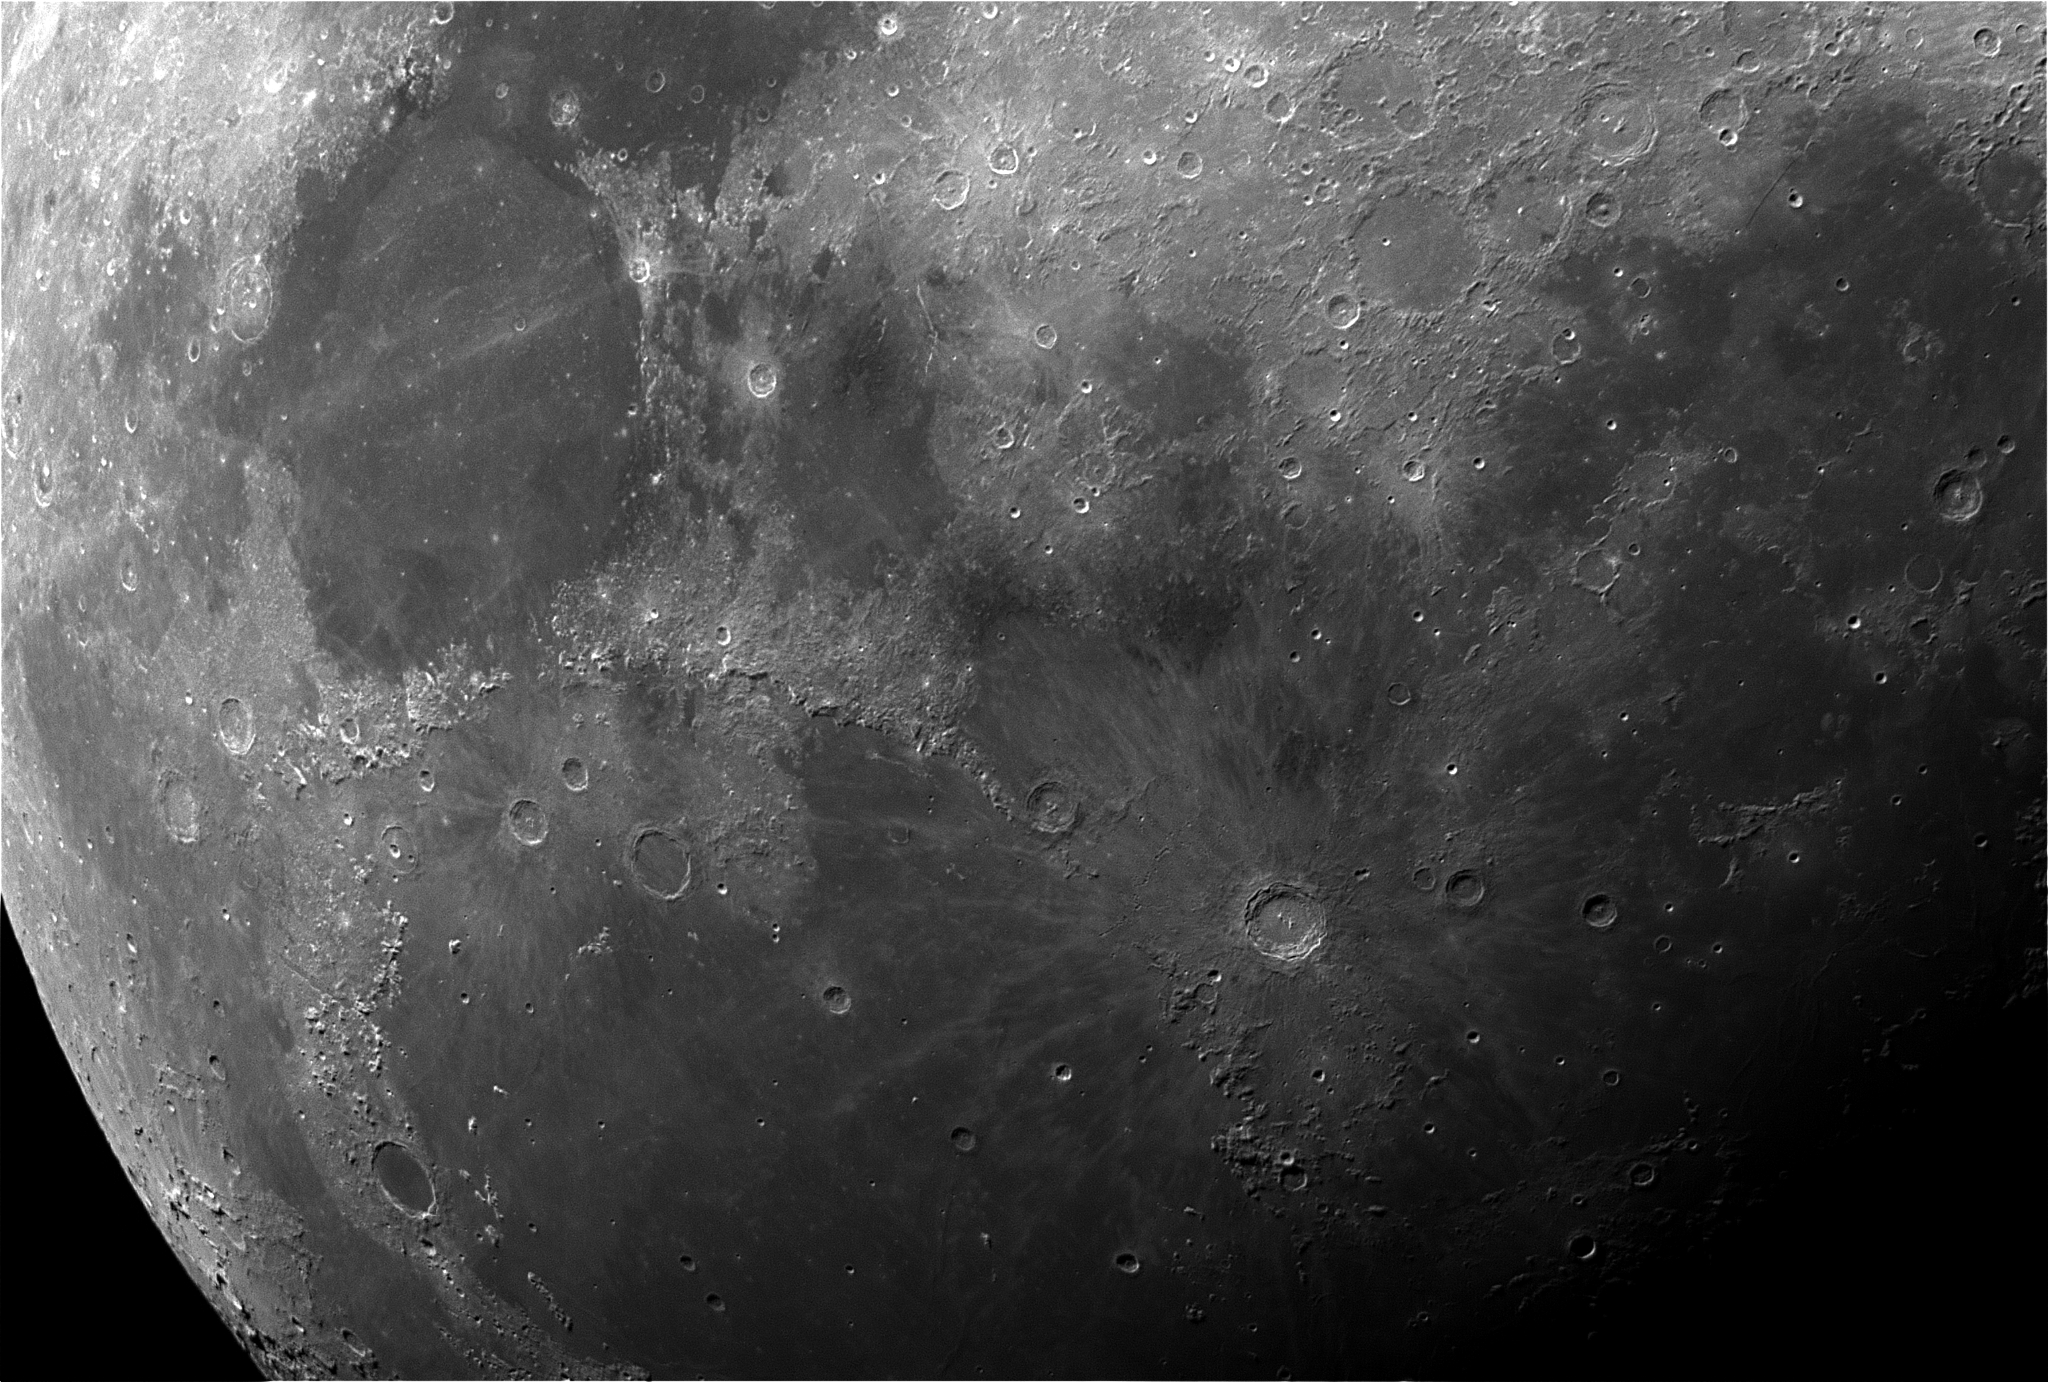 Moon_25Aug15_2_Reg_small.jpg